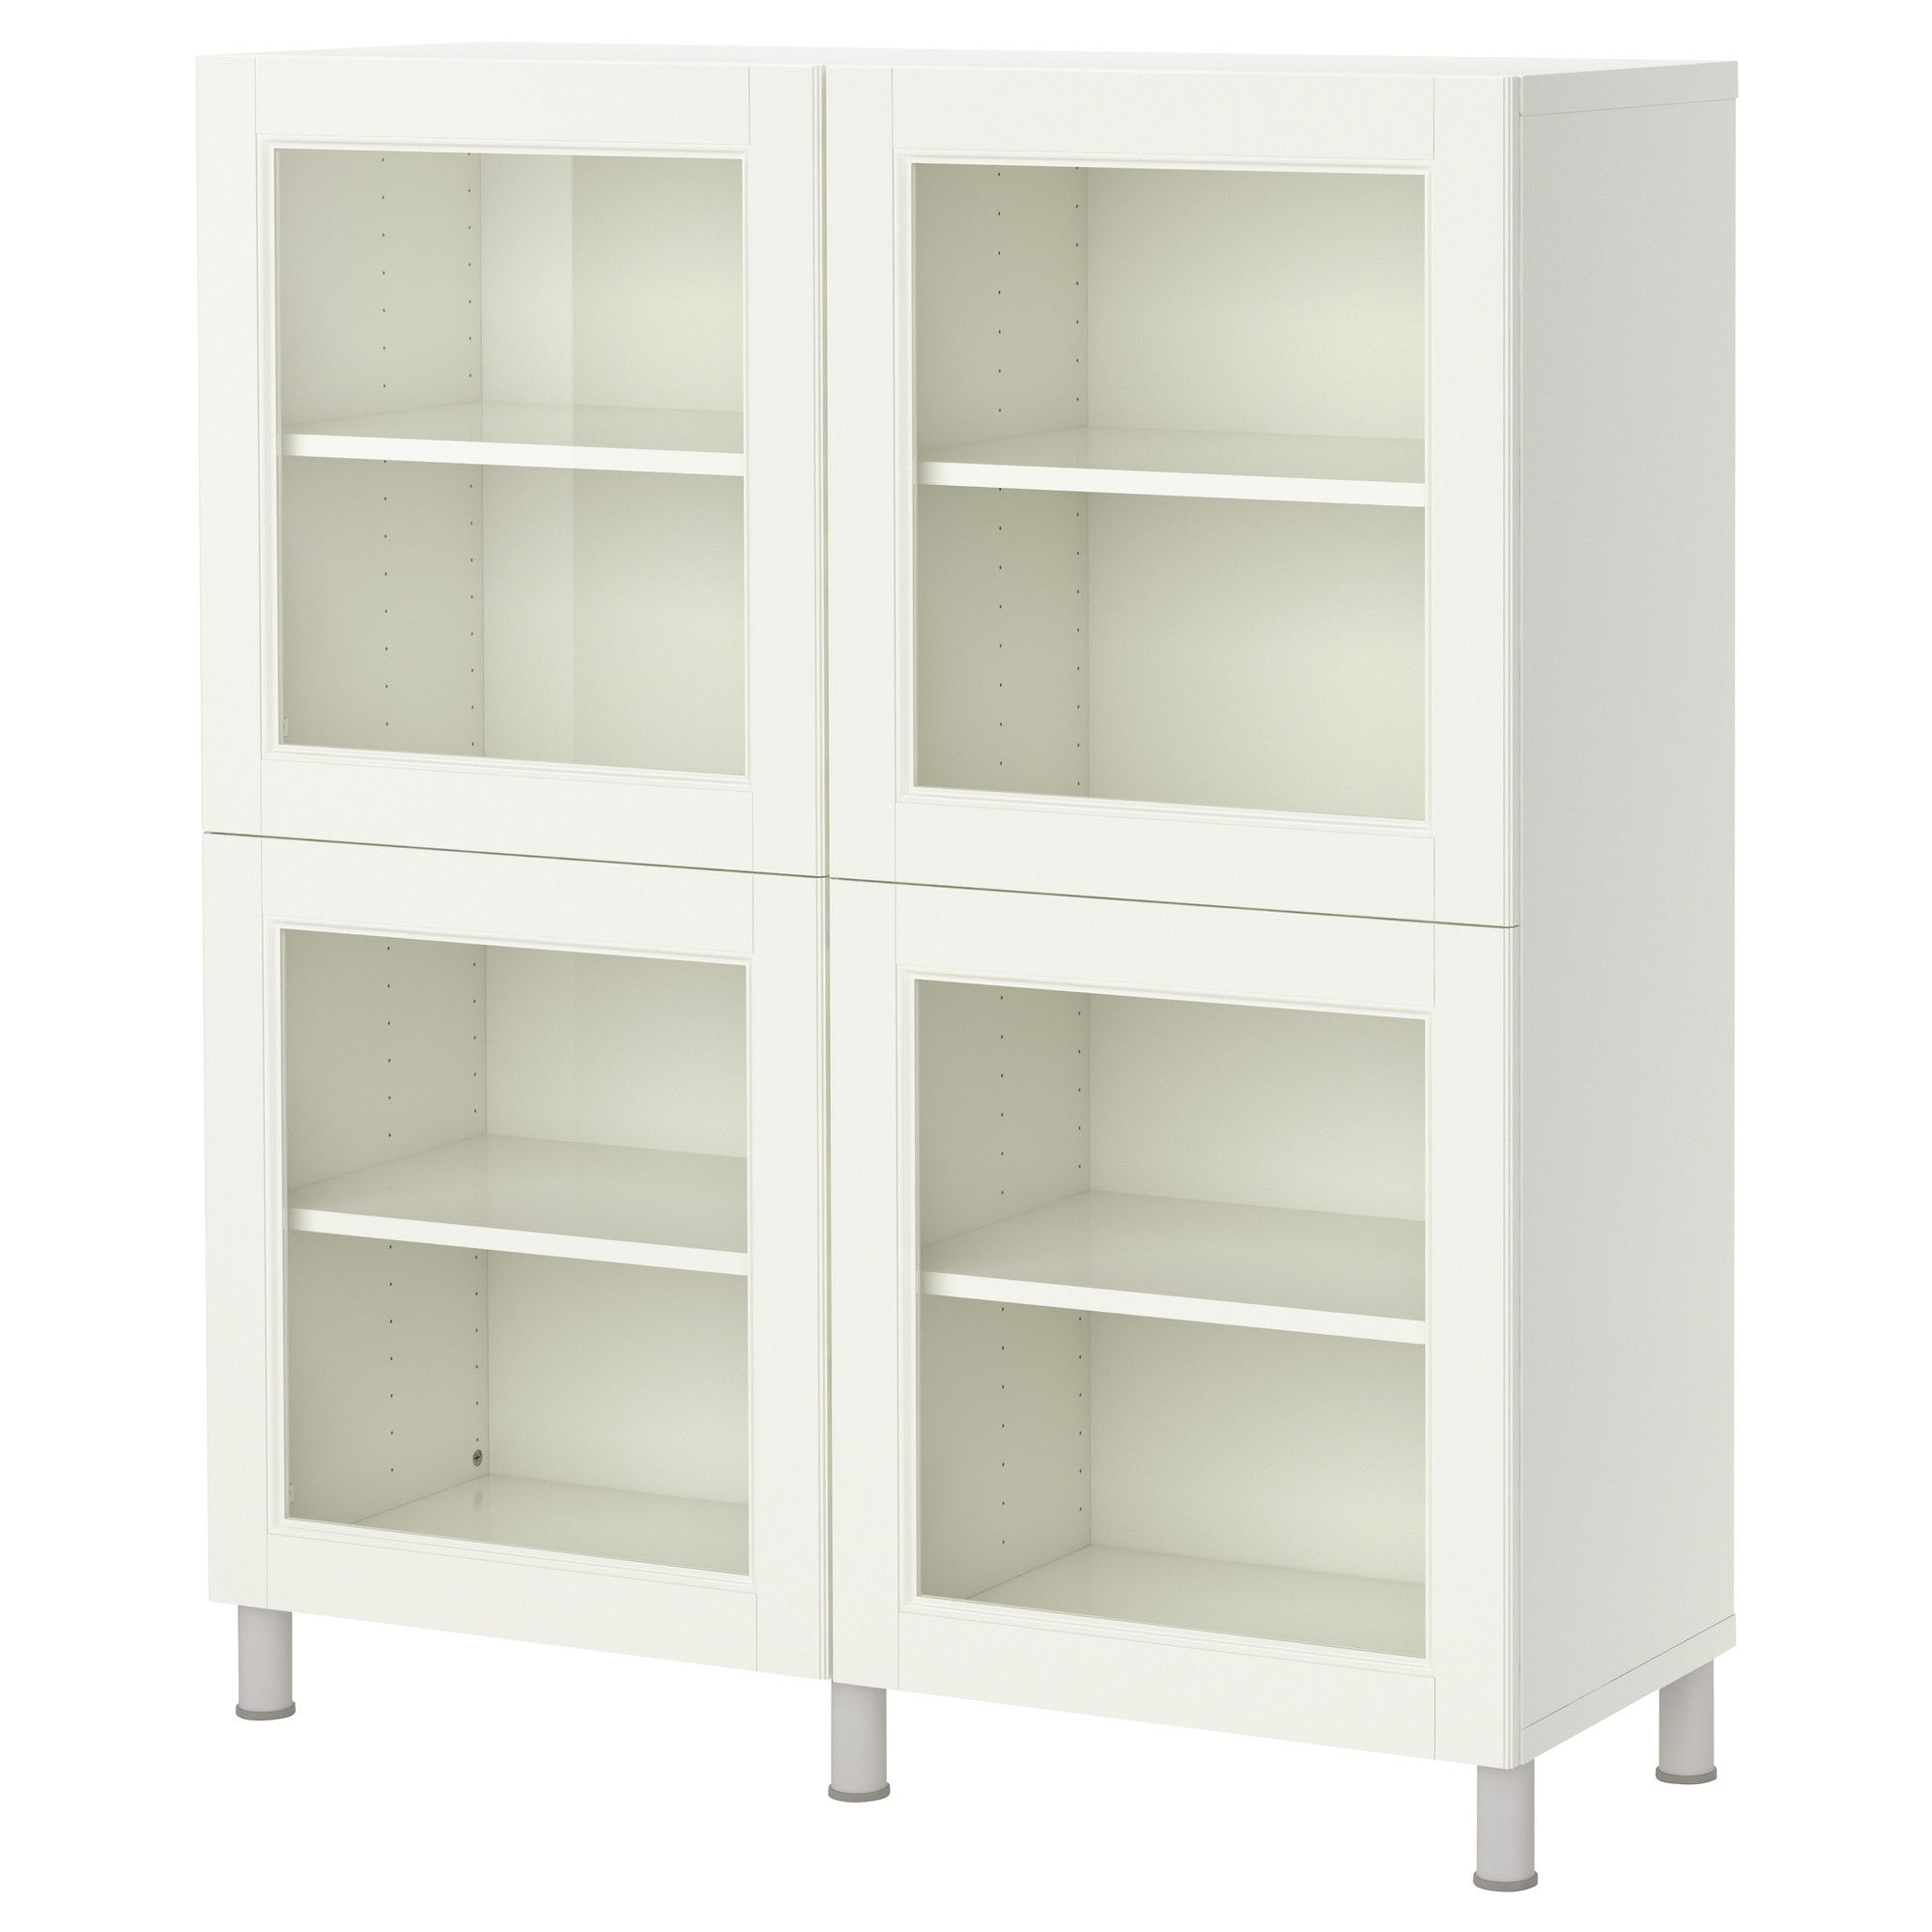 best shelf unit with glass doors white ikea things for my new place home decor. Black Bedroom Furniture Sets. Home Design Ideas